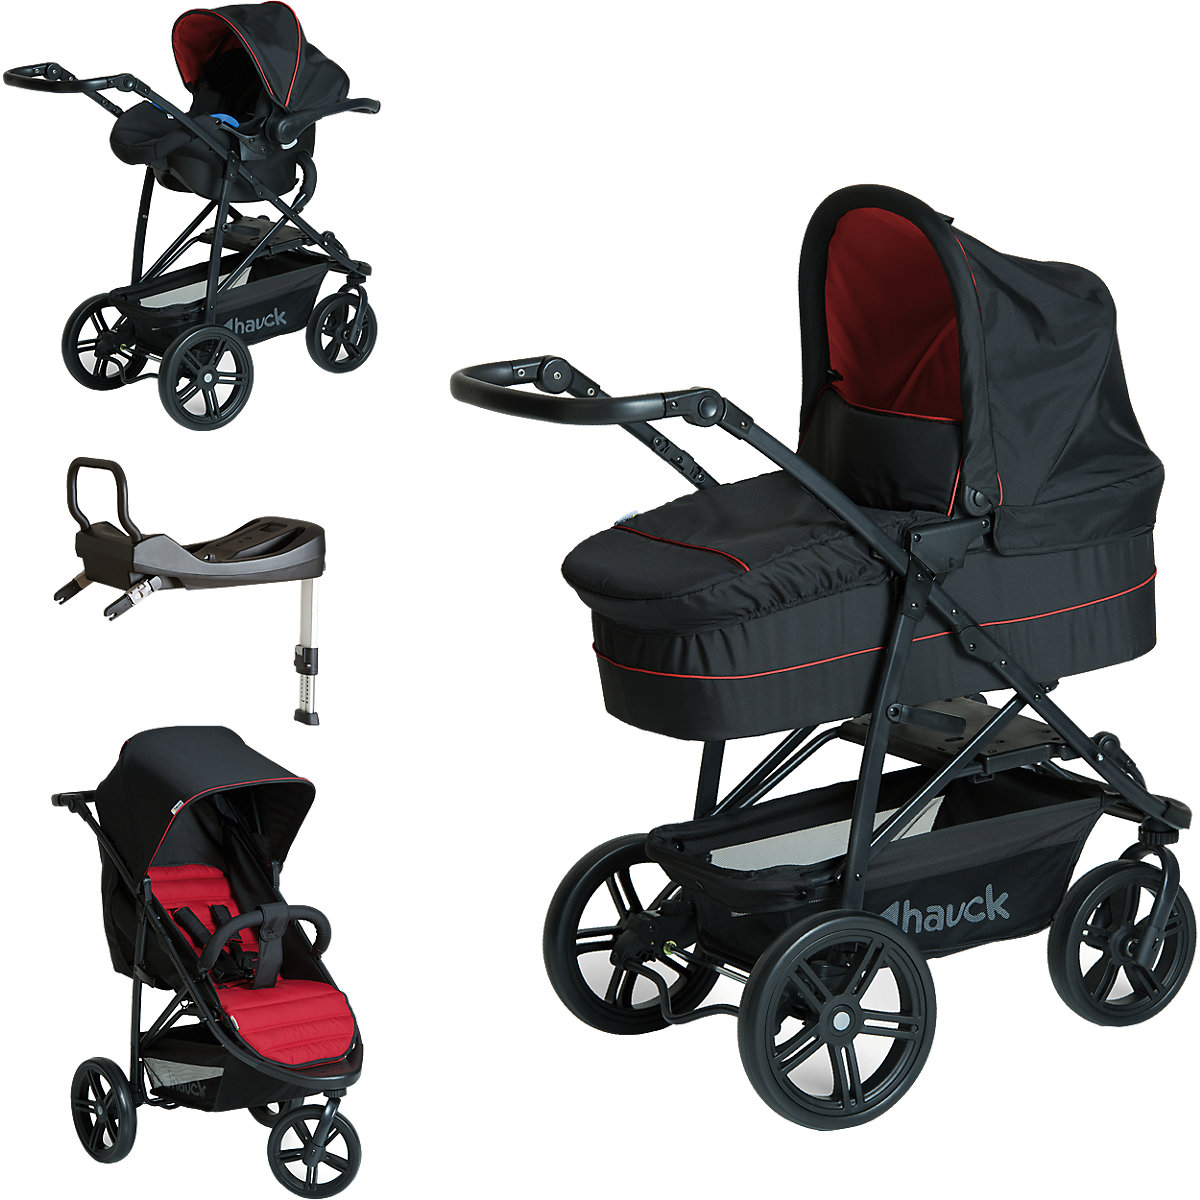 kombi kinderwagen rapid 3 plus trioset inkl isofix base. Black Bedroom Furniture Sets. Home Design Ideas